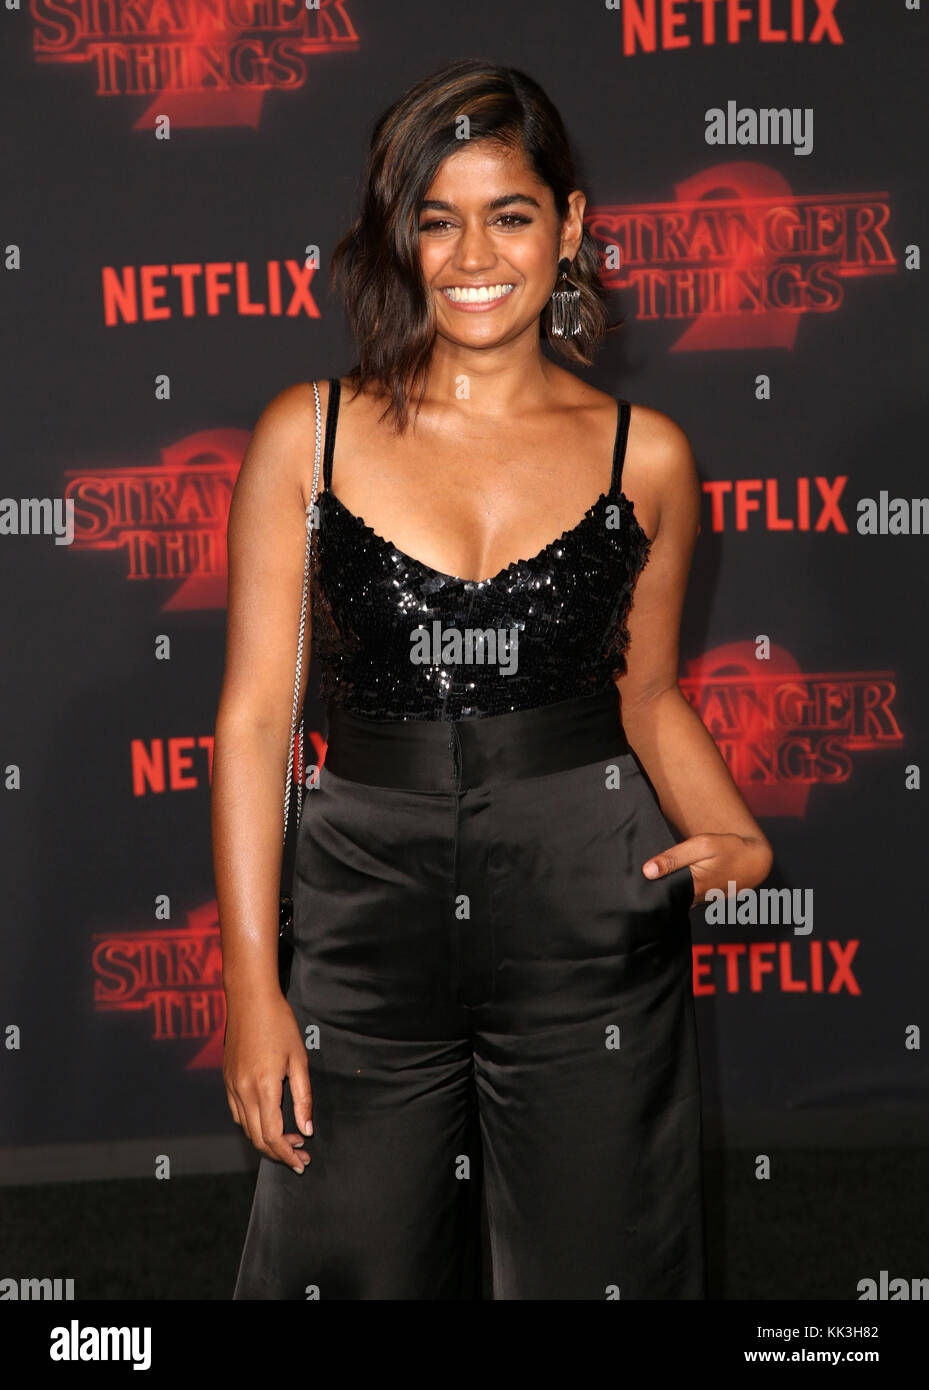 Celebrities attend Netflix's Stranger Things 2 Premiere at Westwood Village Theater.  Featuring: Linnea Berthelsen - Stock Image